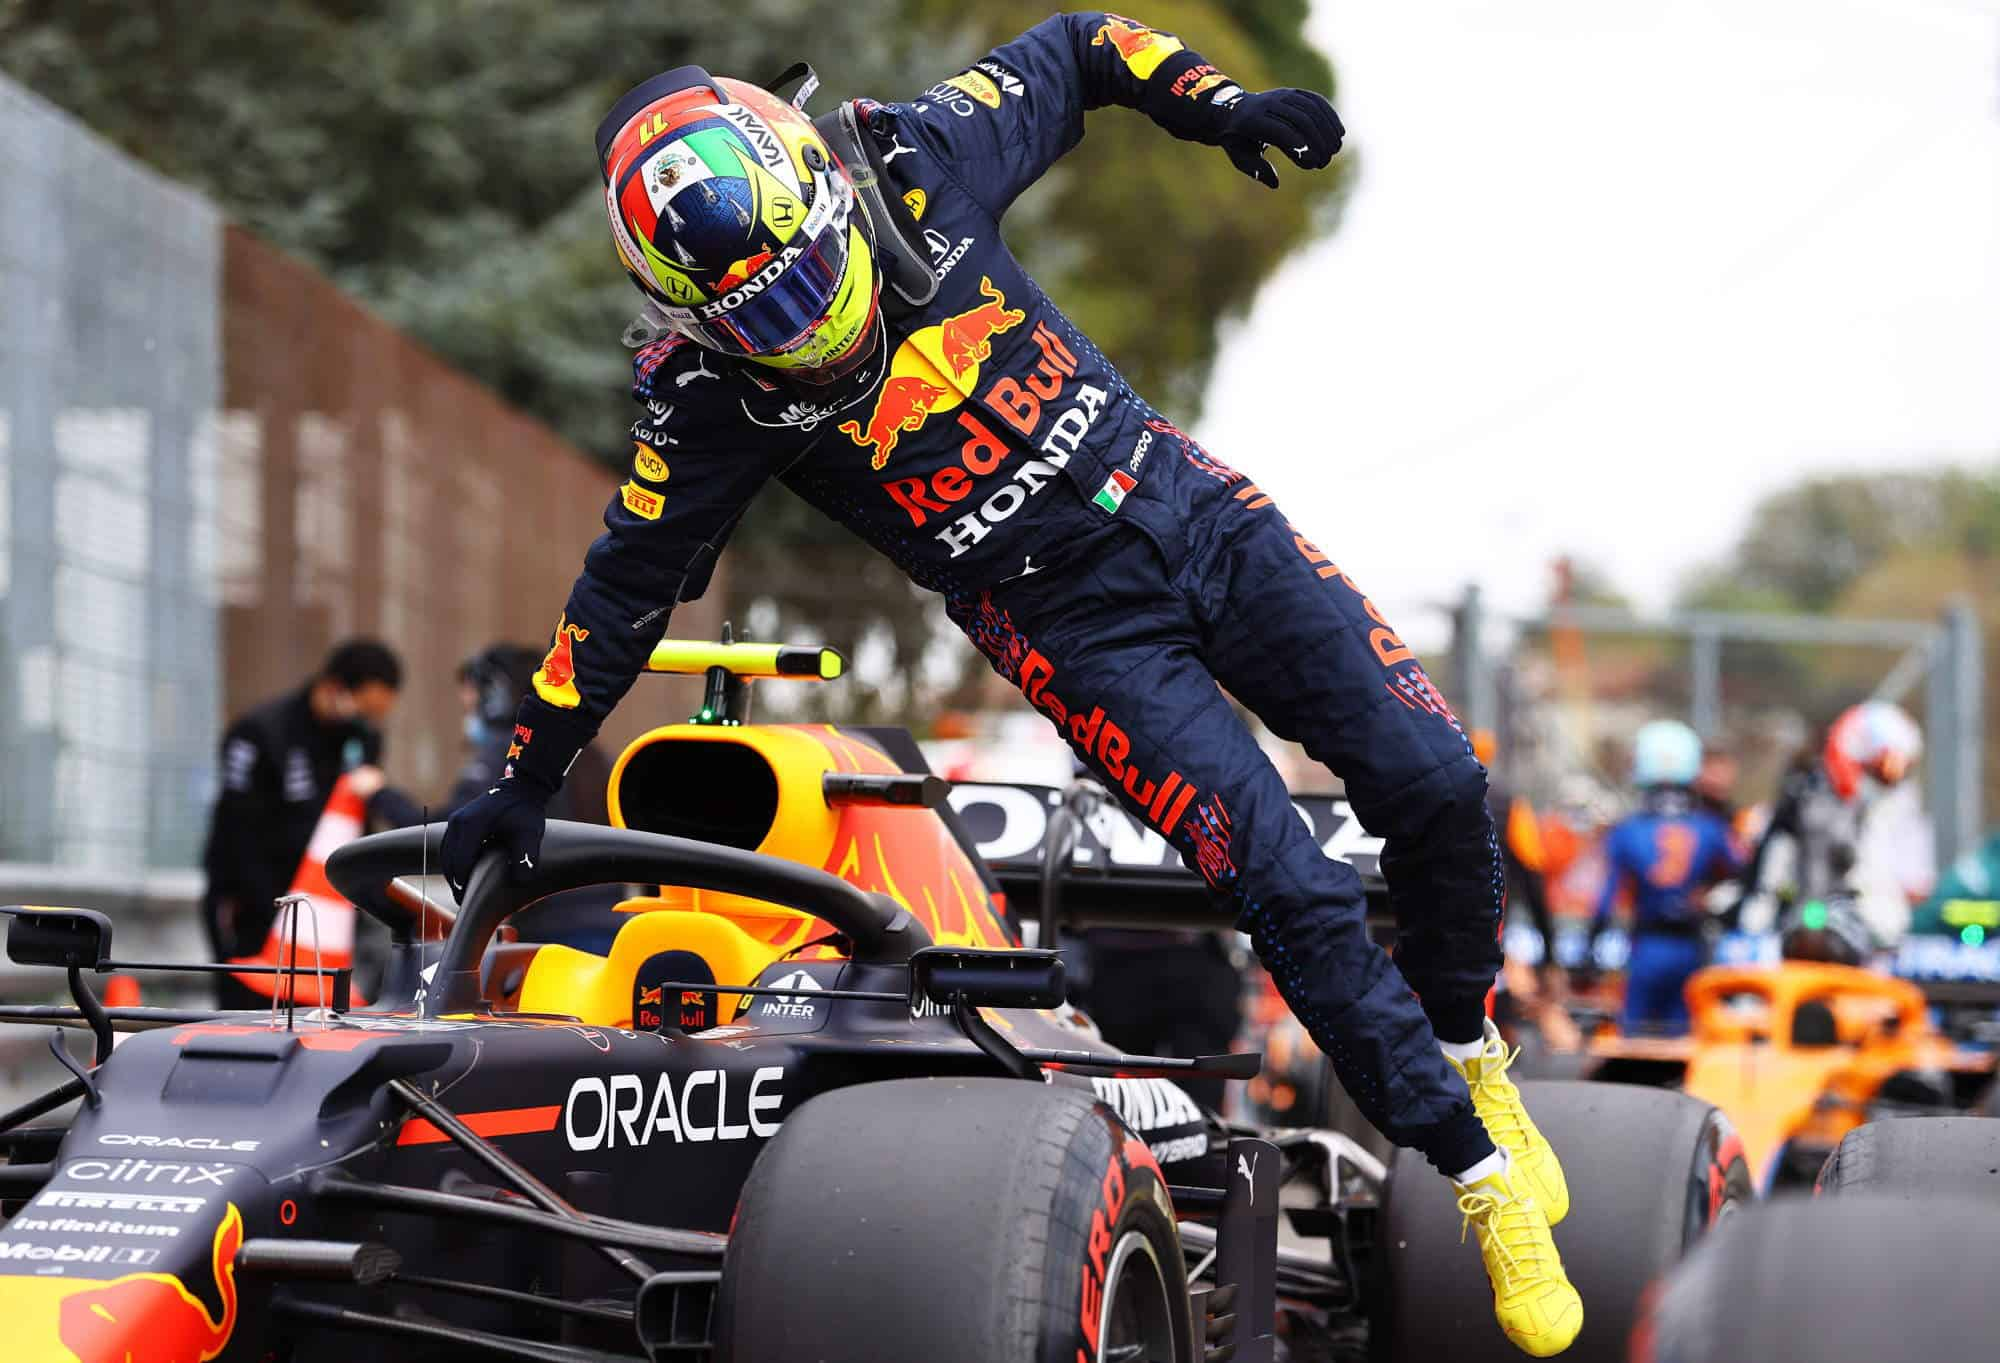 2021 Emilia Romagna GP Perez after qualifying jumping out of the car Photo Red Bull